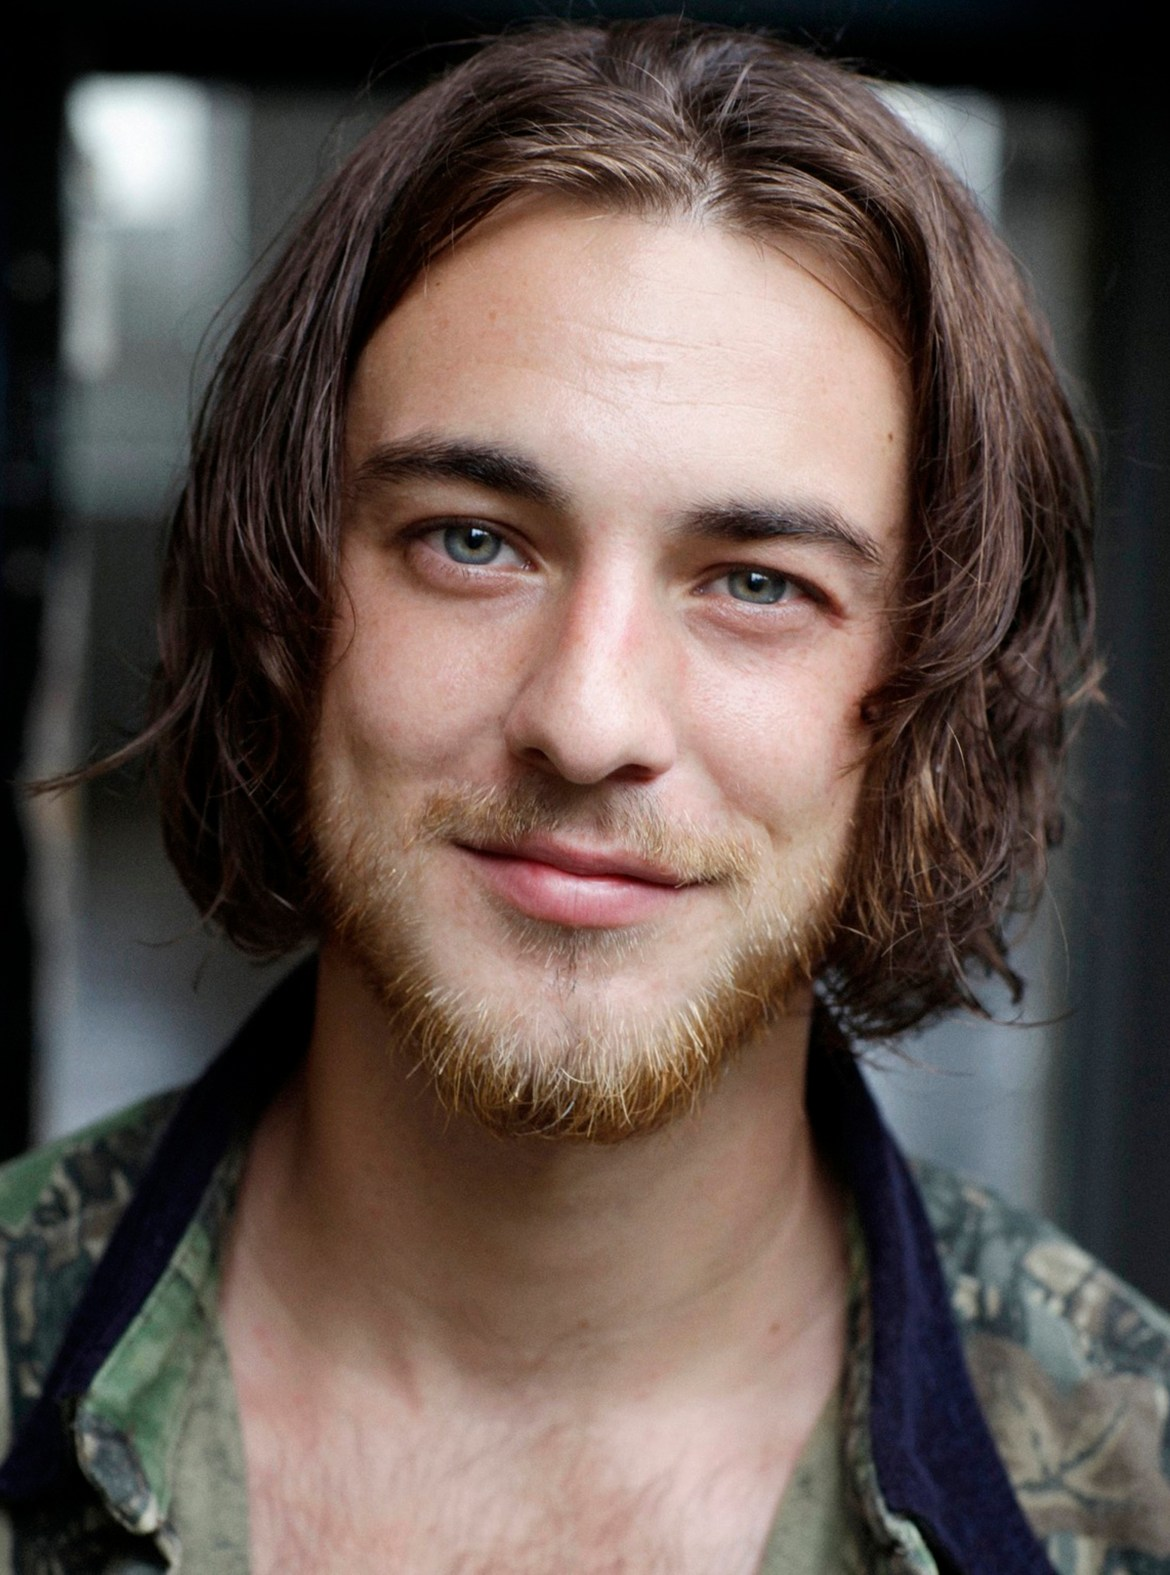 Actor Luke Westlake, 26, took his own life while out of work during the first coronavirus lockdown